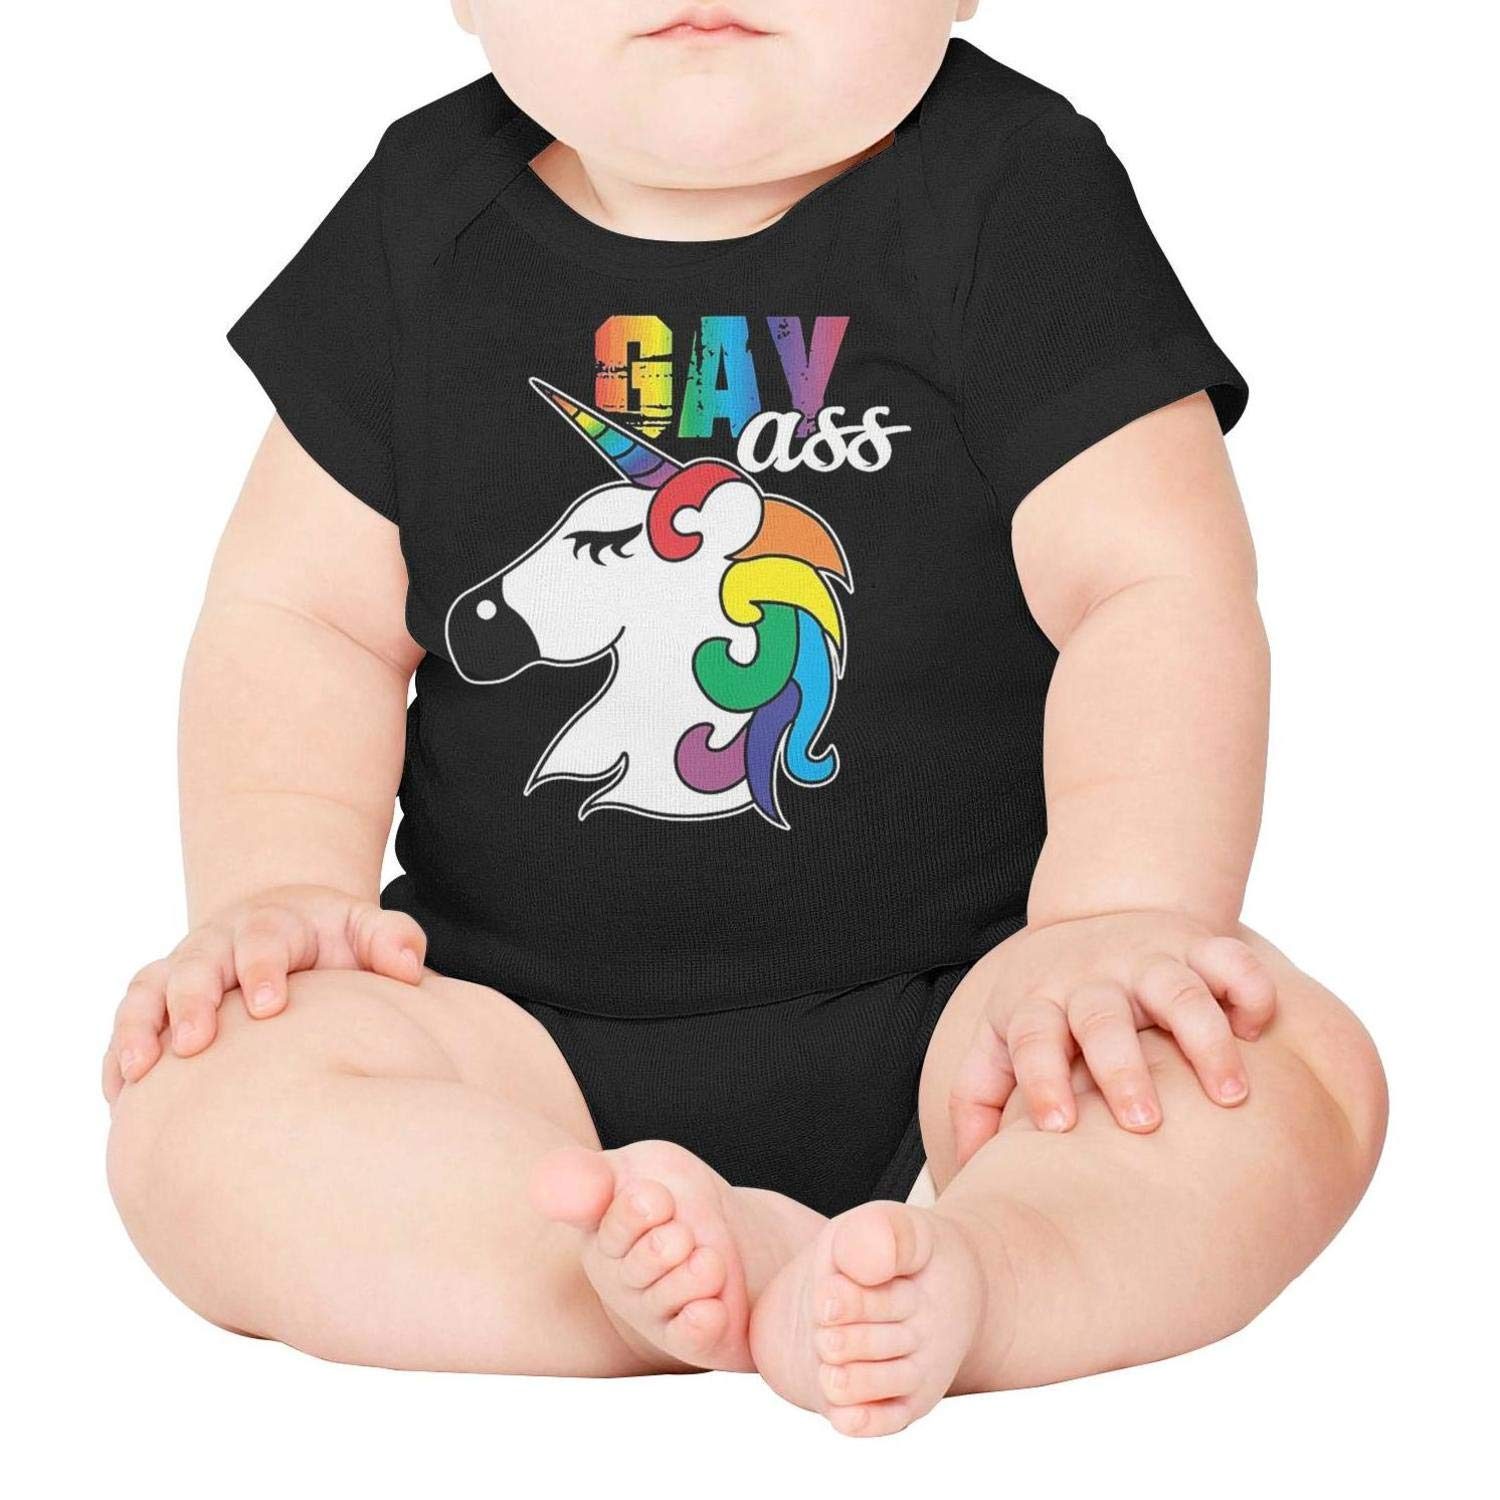 Love is Love Inspirational Gay Pride Baby Onesies Bodysuit Jumpsuits One-Piece Cotton Short Sleeve